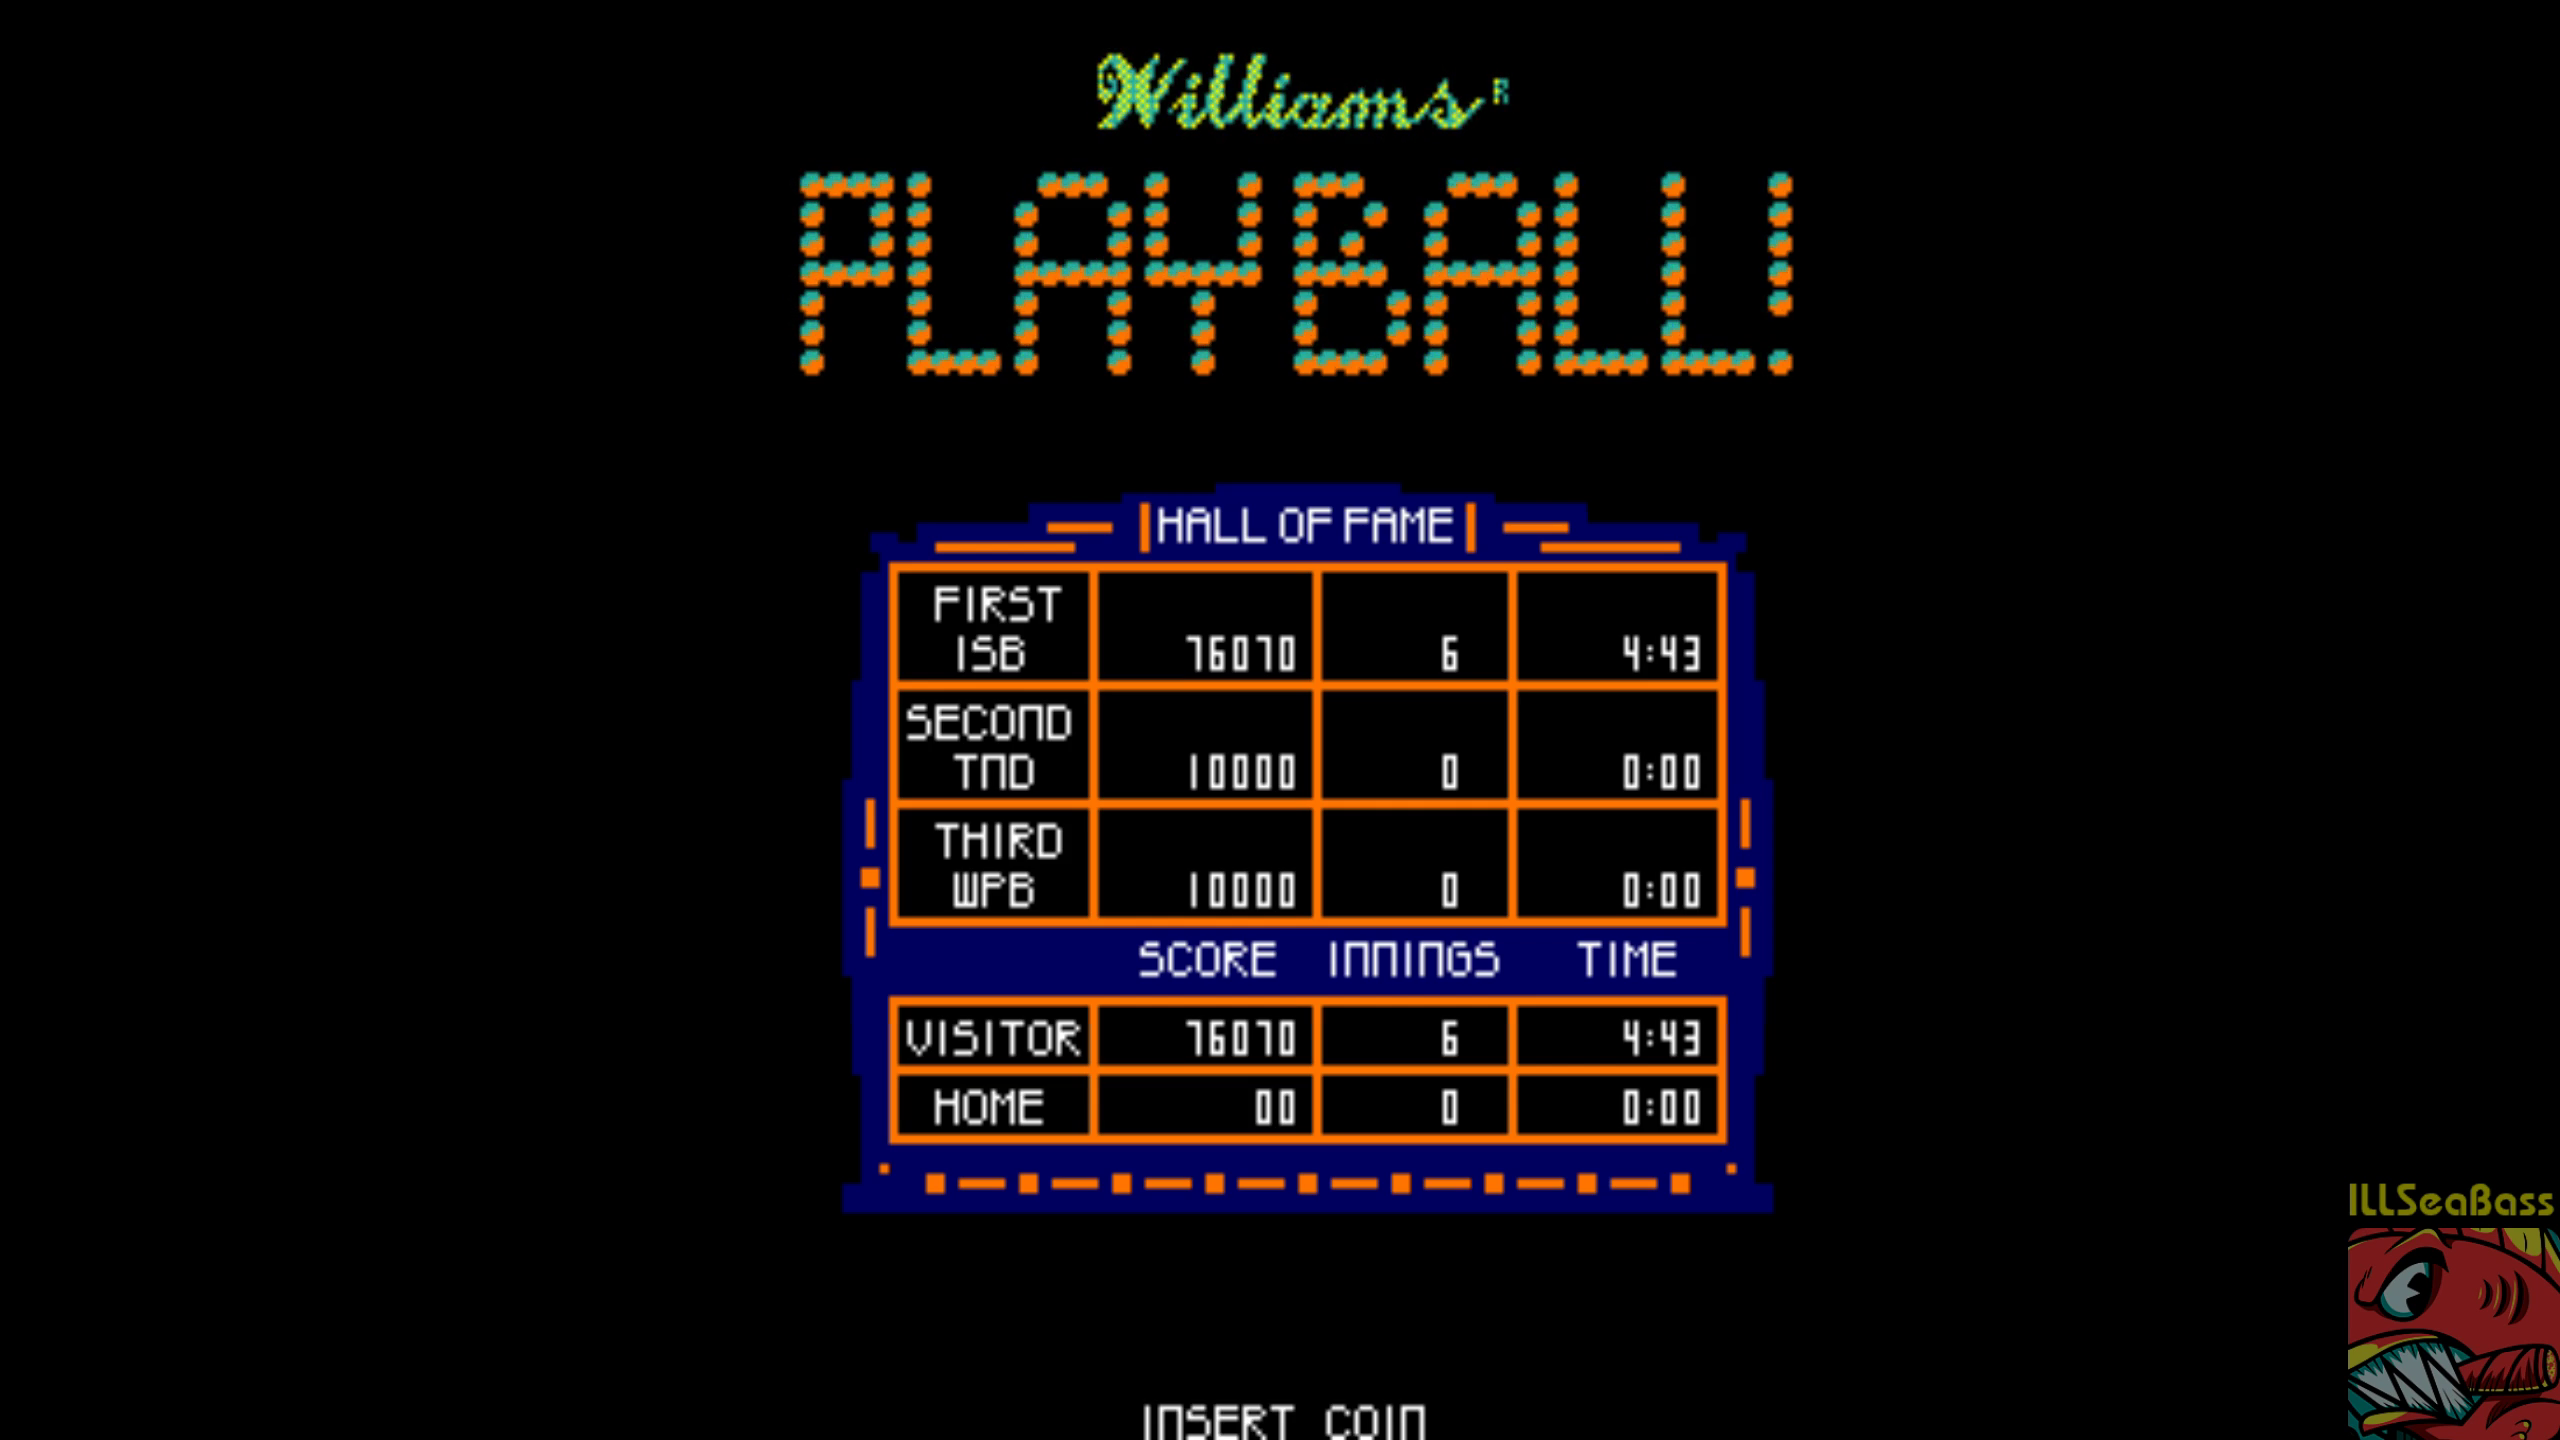 ILLSeaBass: Playball! [playball] (Arcade Emulated / M.A.M.E.) 76,070 points on 2018-08-20 16:14:42